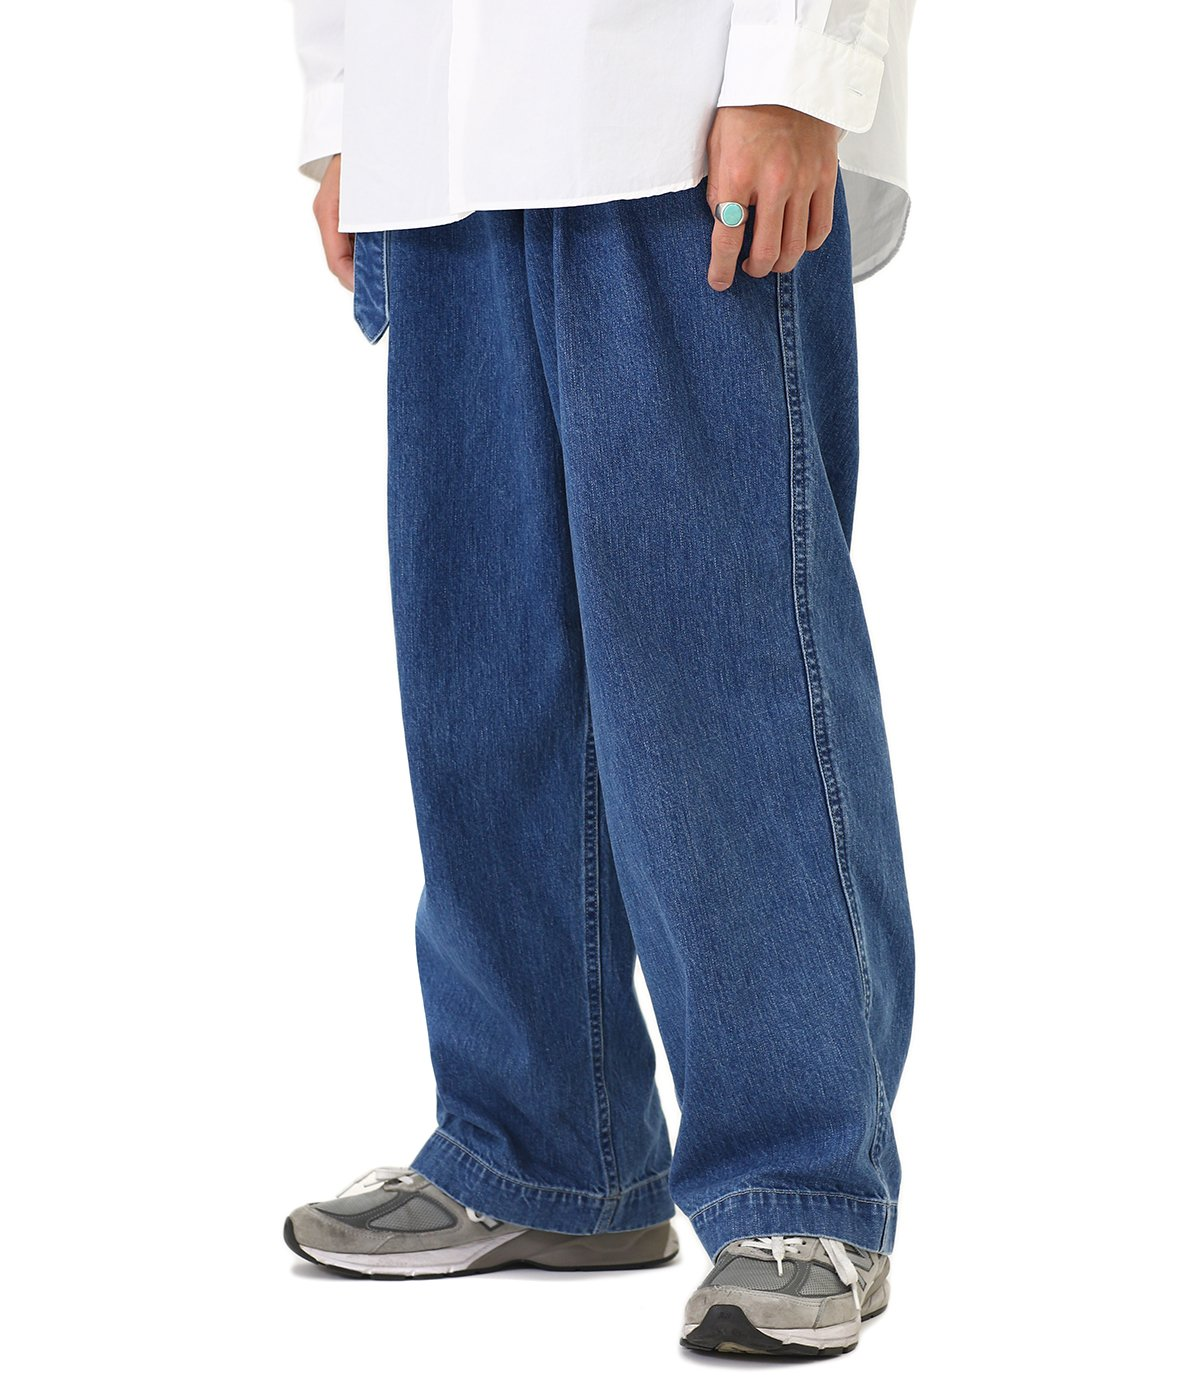 【別注】Belted Denim Pants -Limited-